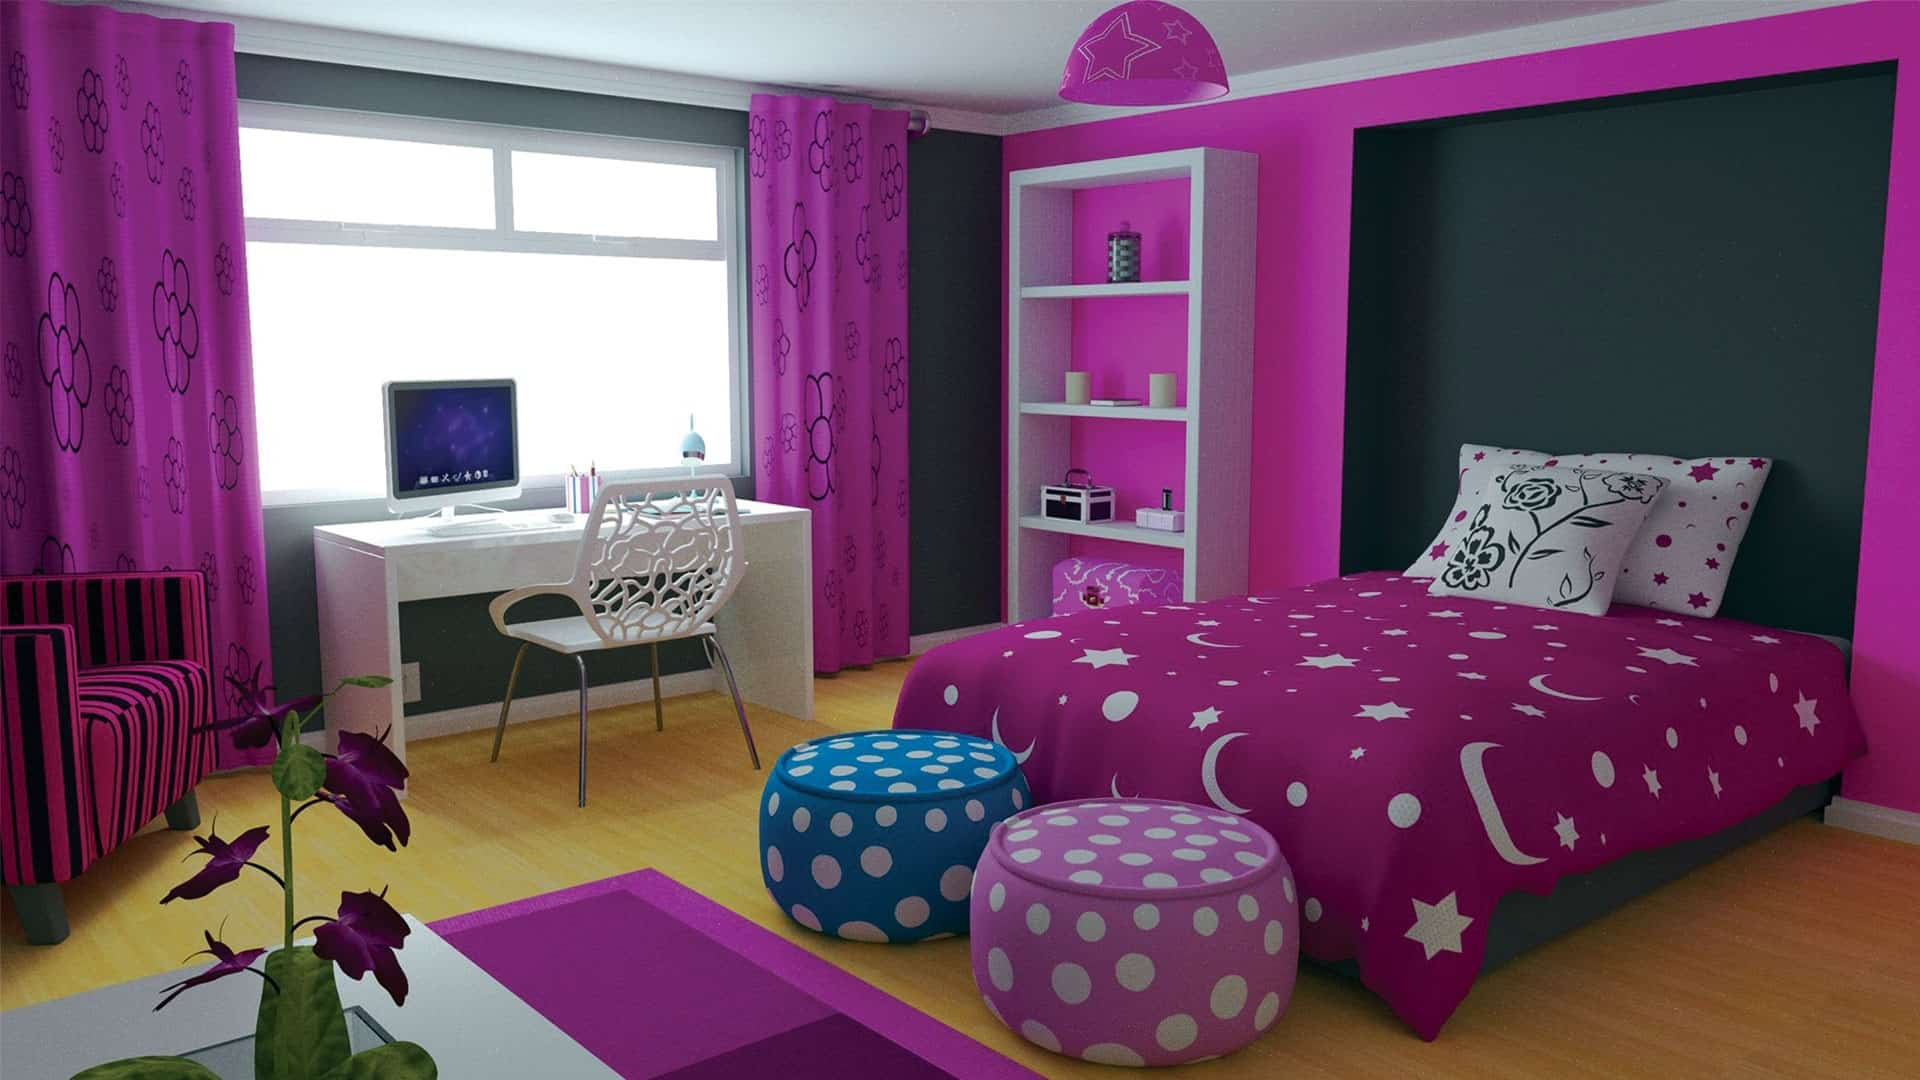 Home decor trends 2017 purple teen room for Bedroom ideas for women